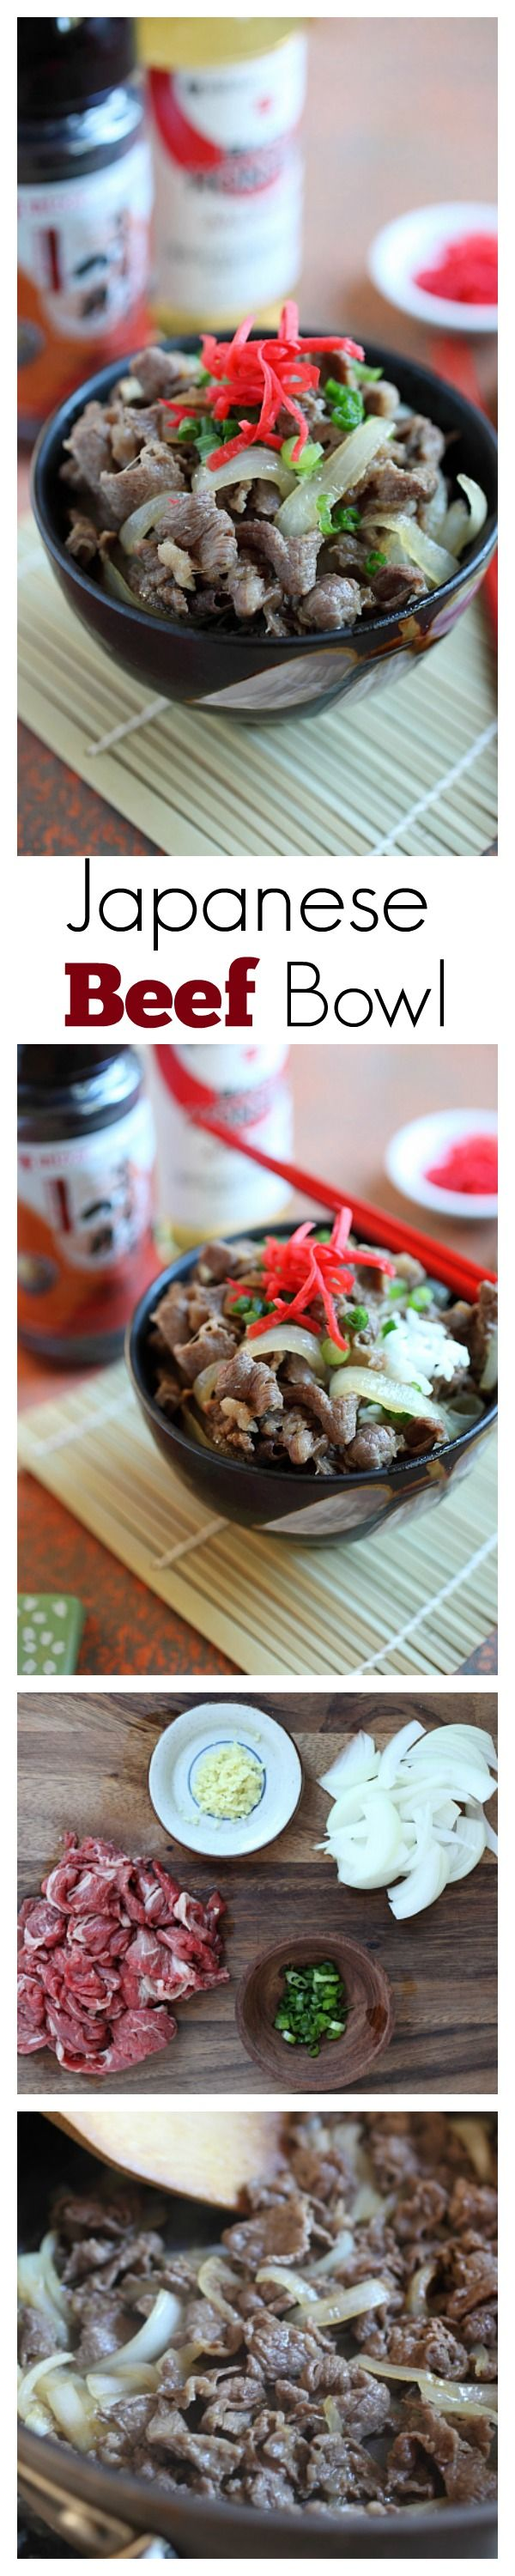 Japanese Beef Bowl Gyudon - easy & delicious simmered beef with onion, soy sauce and rice. Takes 15 minutes to make | rasamalaysia.com